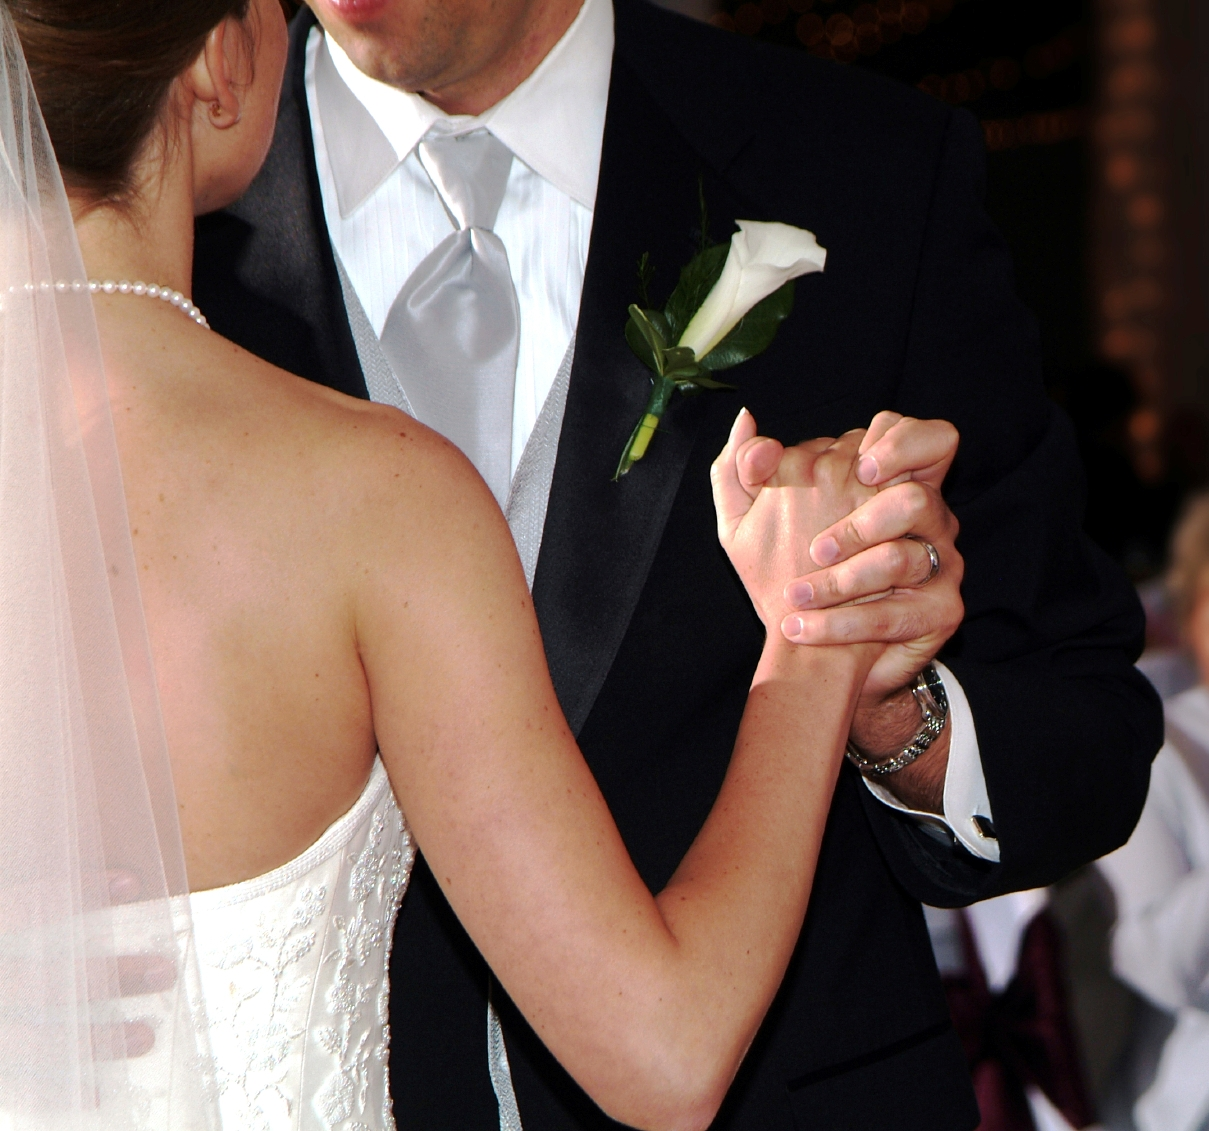 Top 10 First Dance Songs: Spotify's Top 10 First Dance Wedding Songs